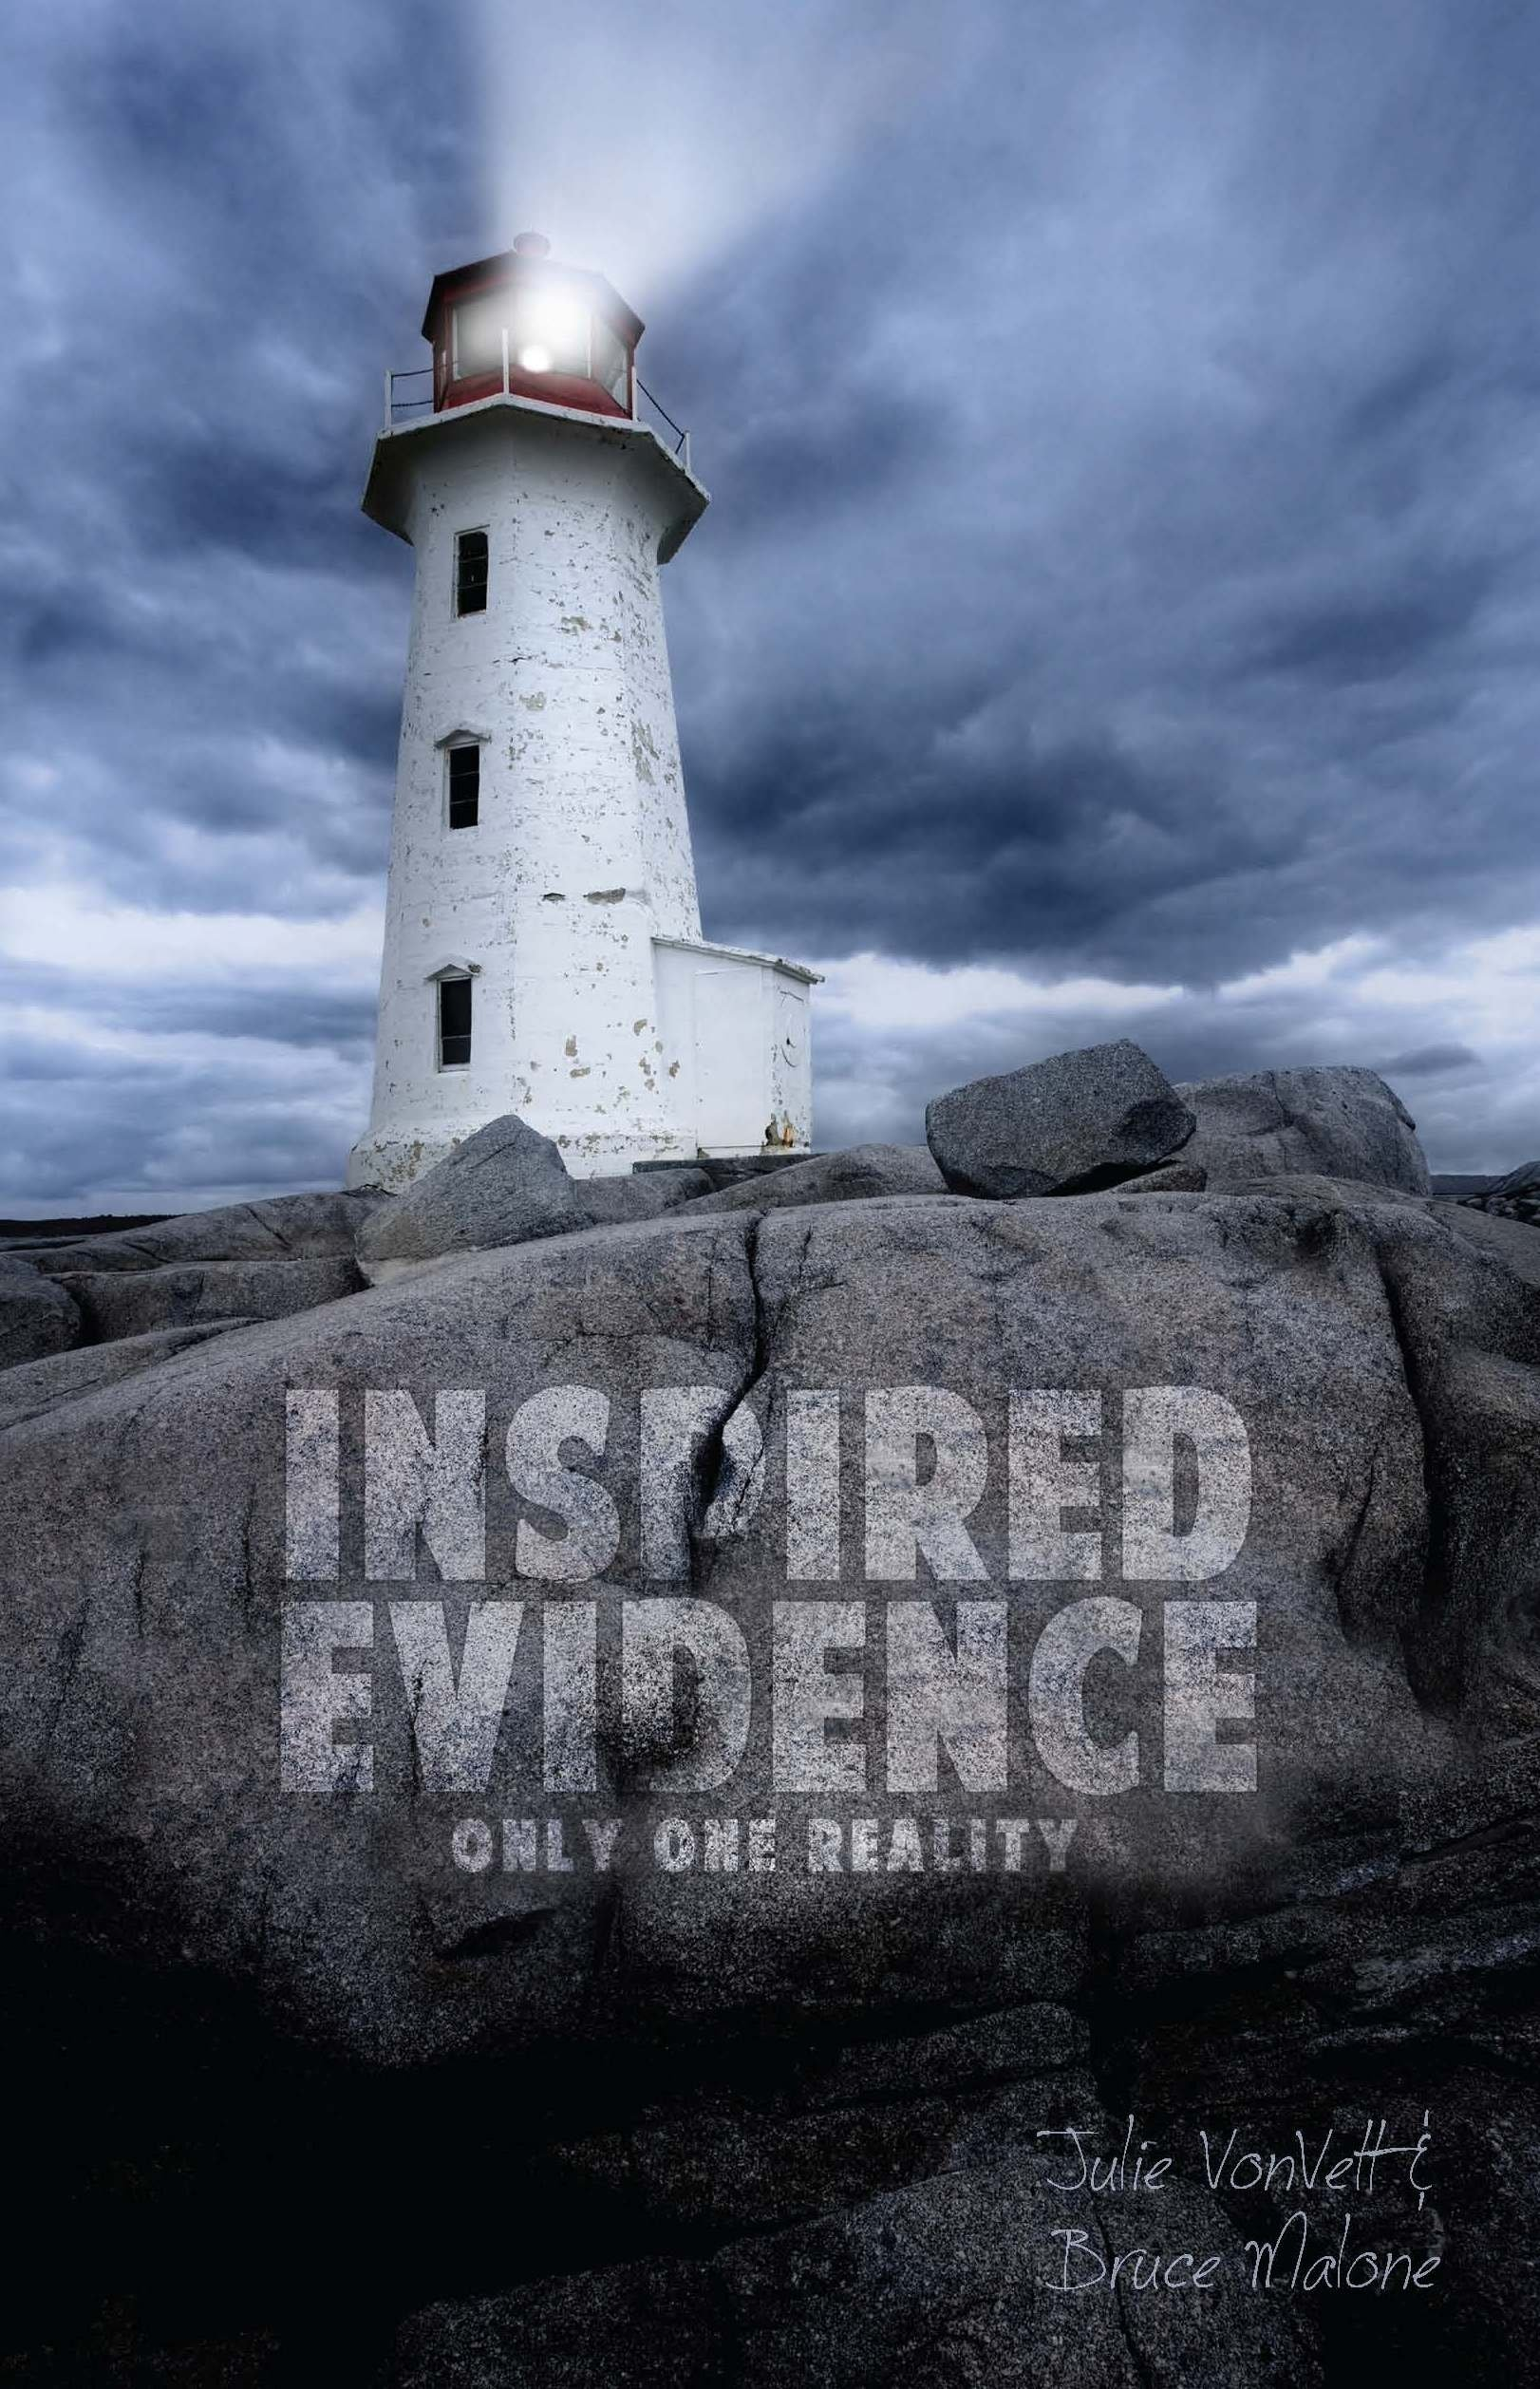 Inspired Evidence: Only One Reality pdf